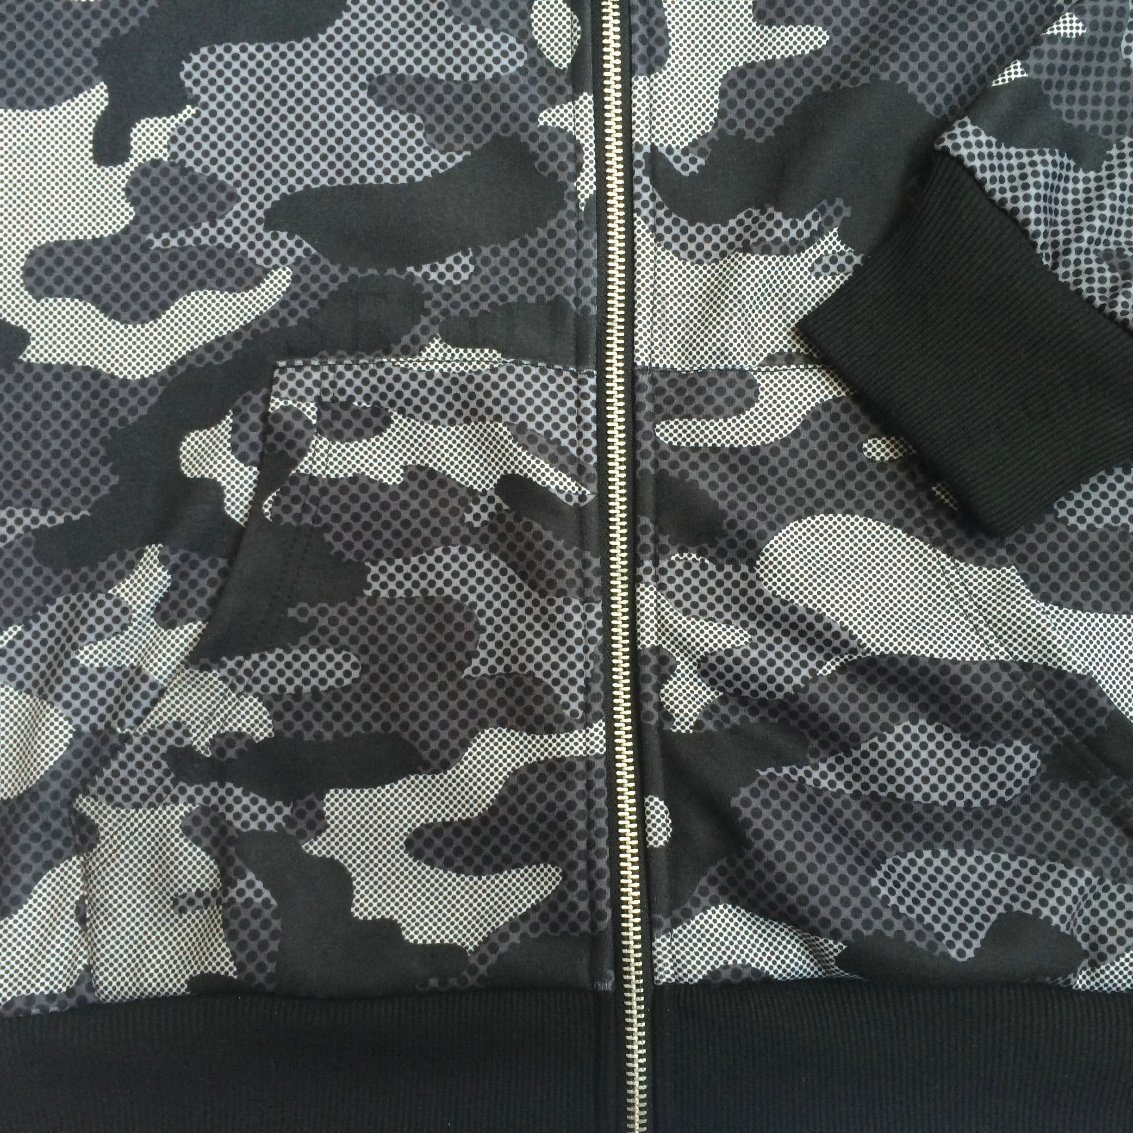 Army Cambo Print Jacket Hoodies Clothes with Zip-up Wear Fw-8661